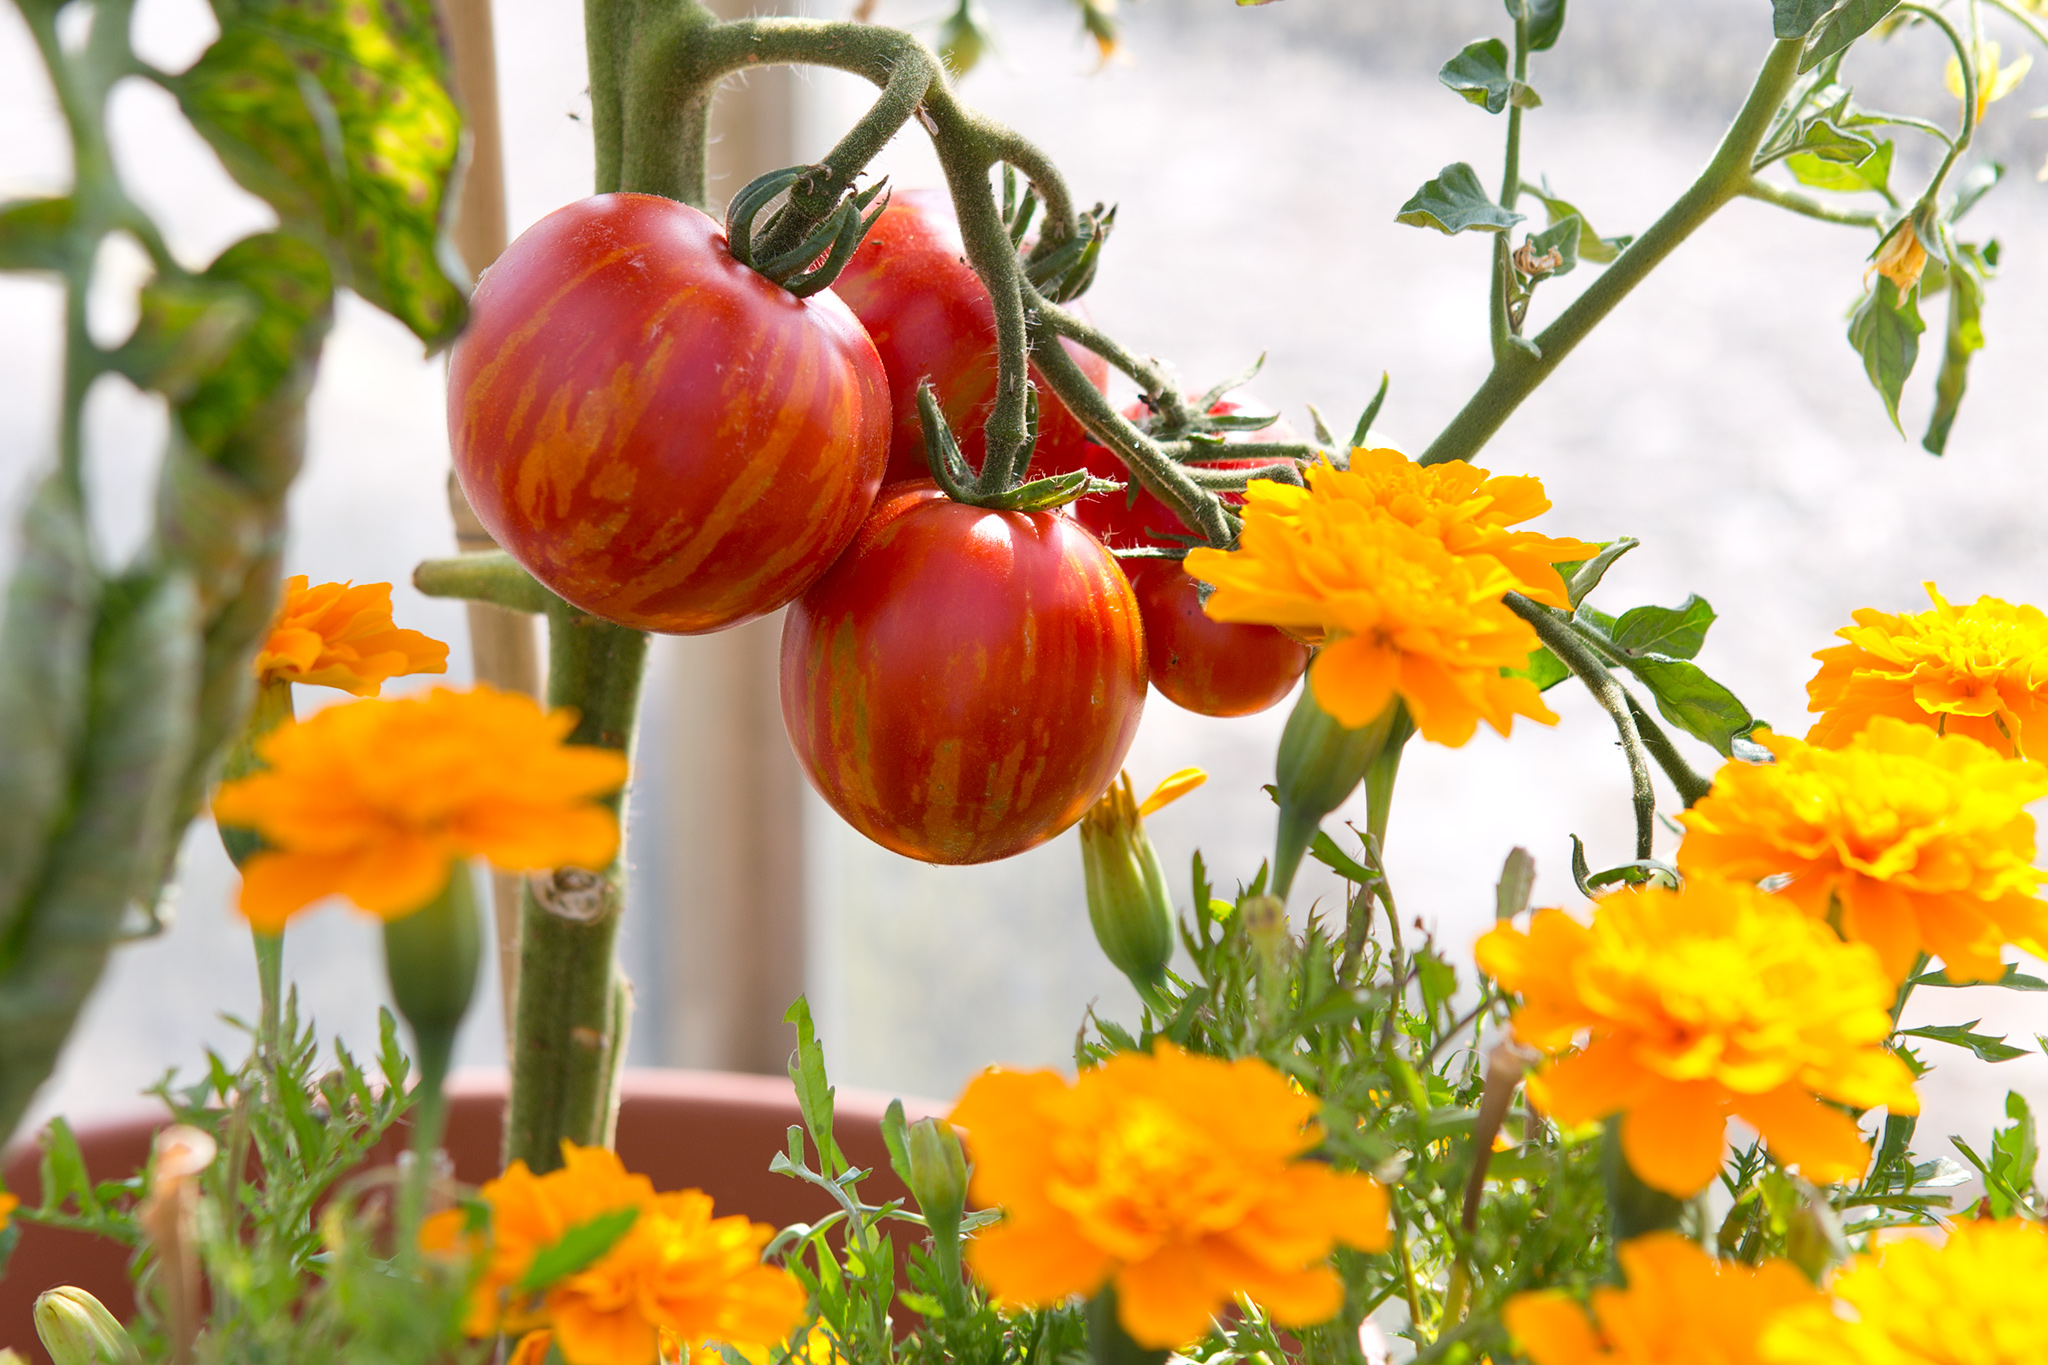 tomatoes-and-marigolds-6